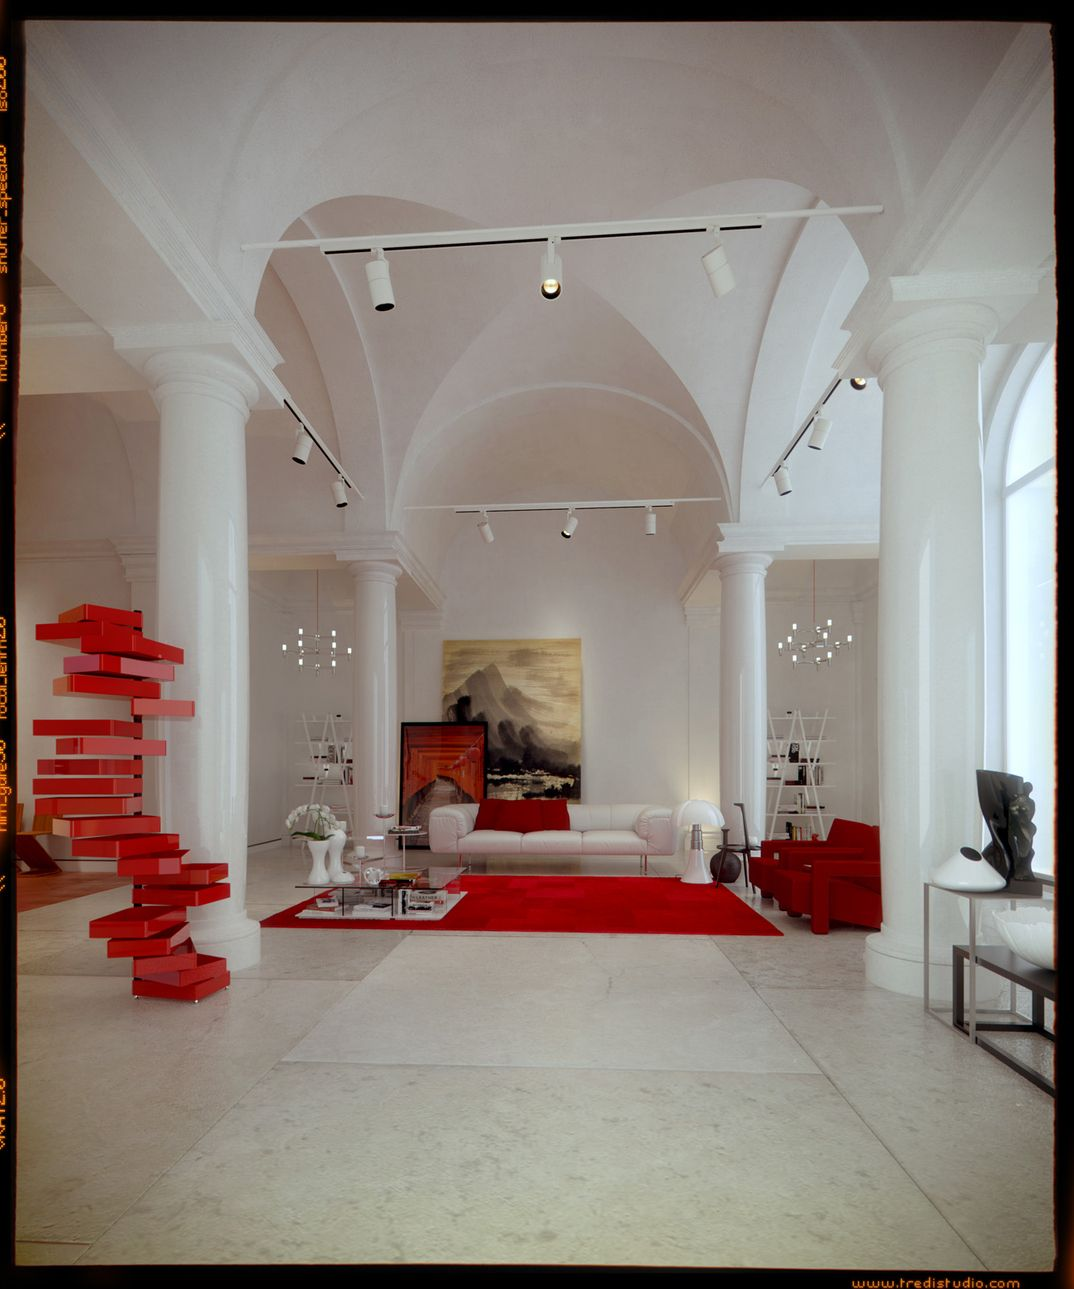 The Red Carpet Room